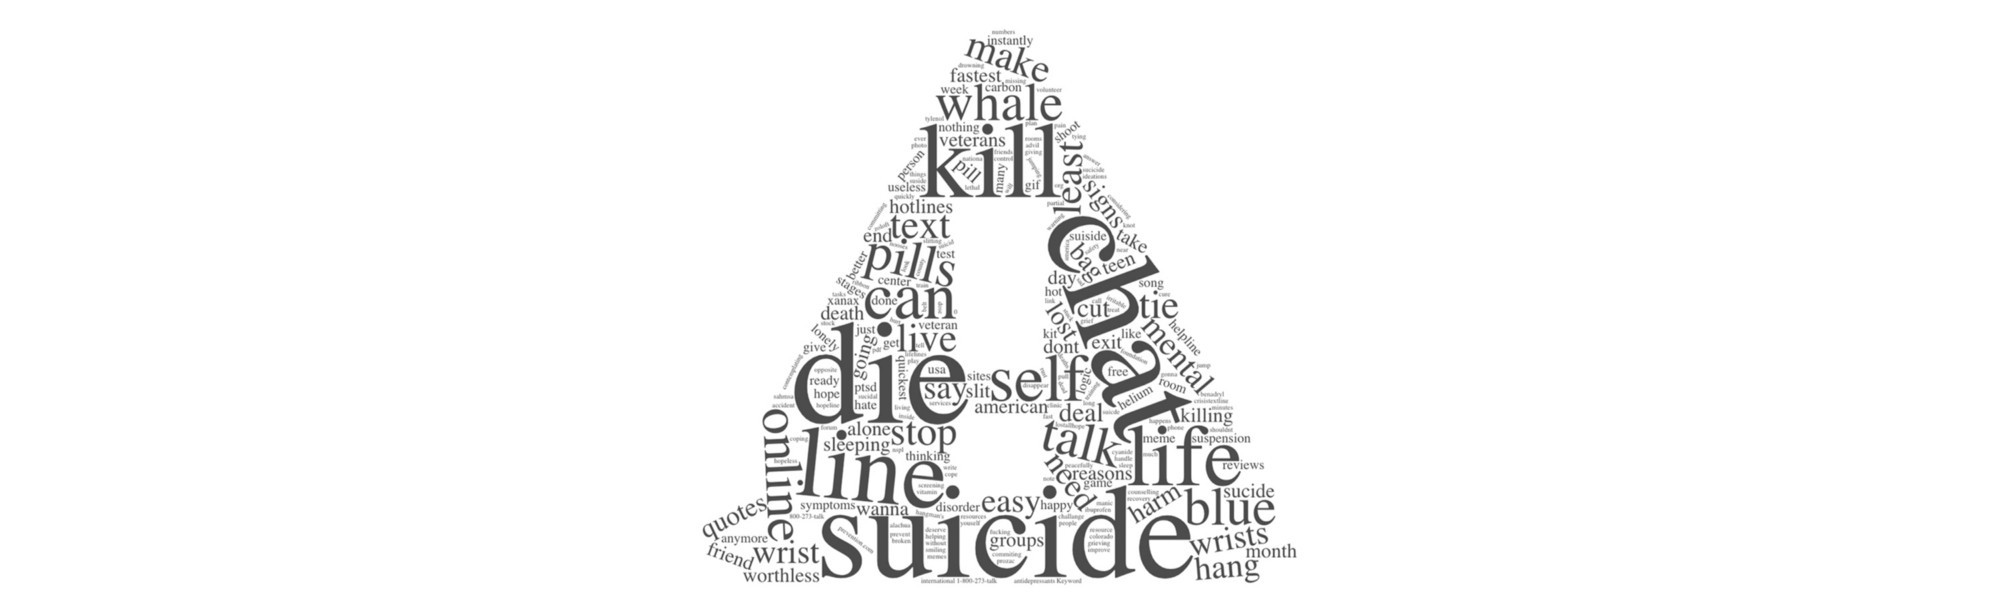 Designing For Suicidal Users Preventing Suicide The Modern Way